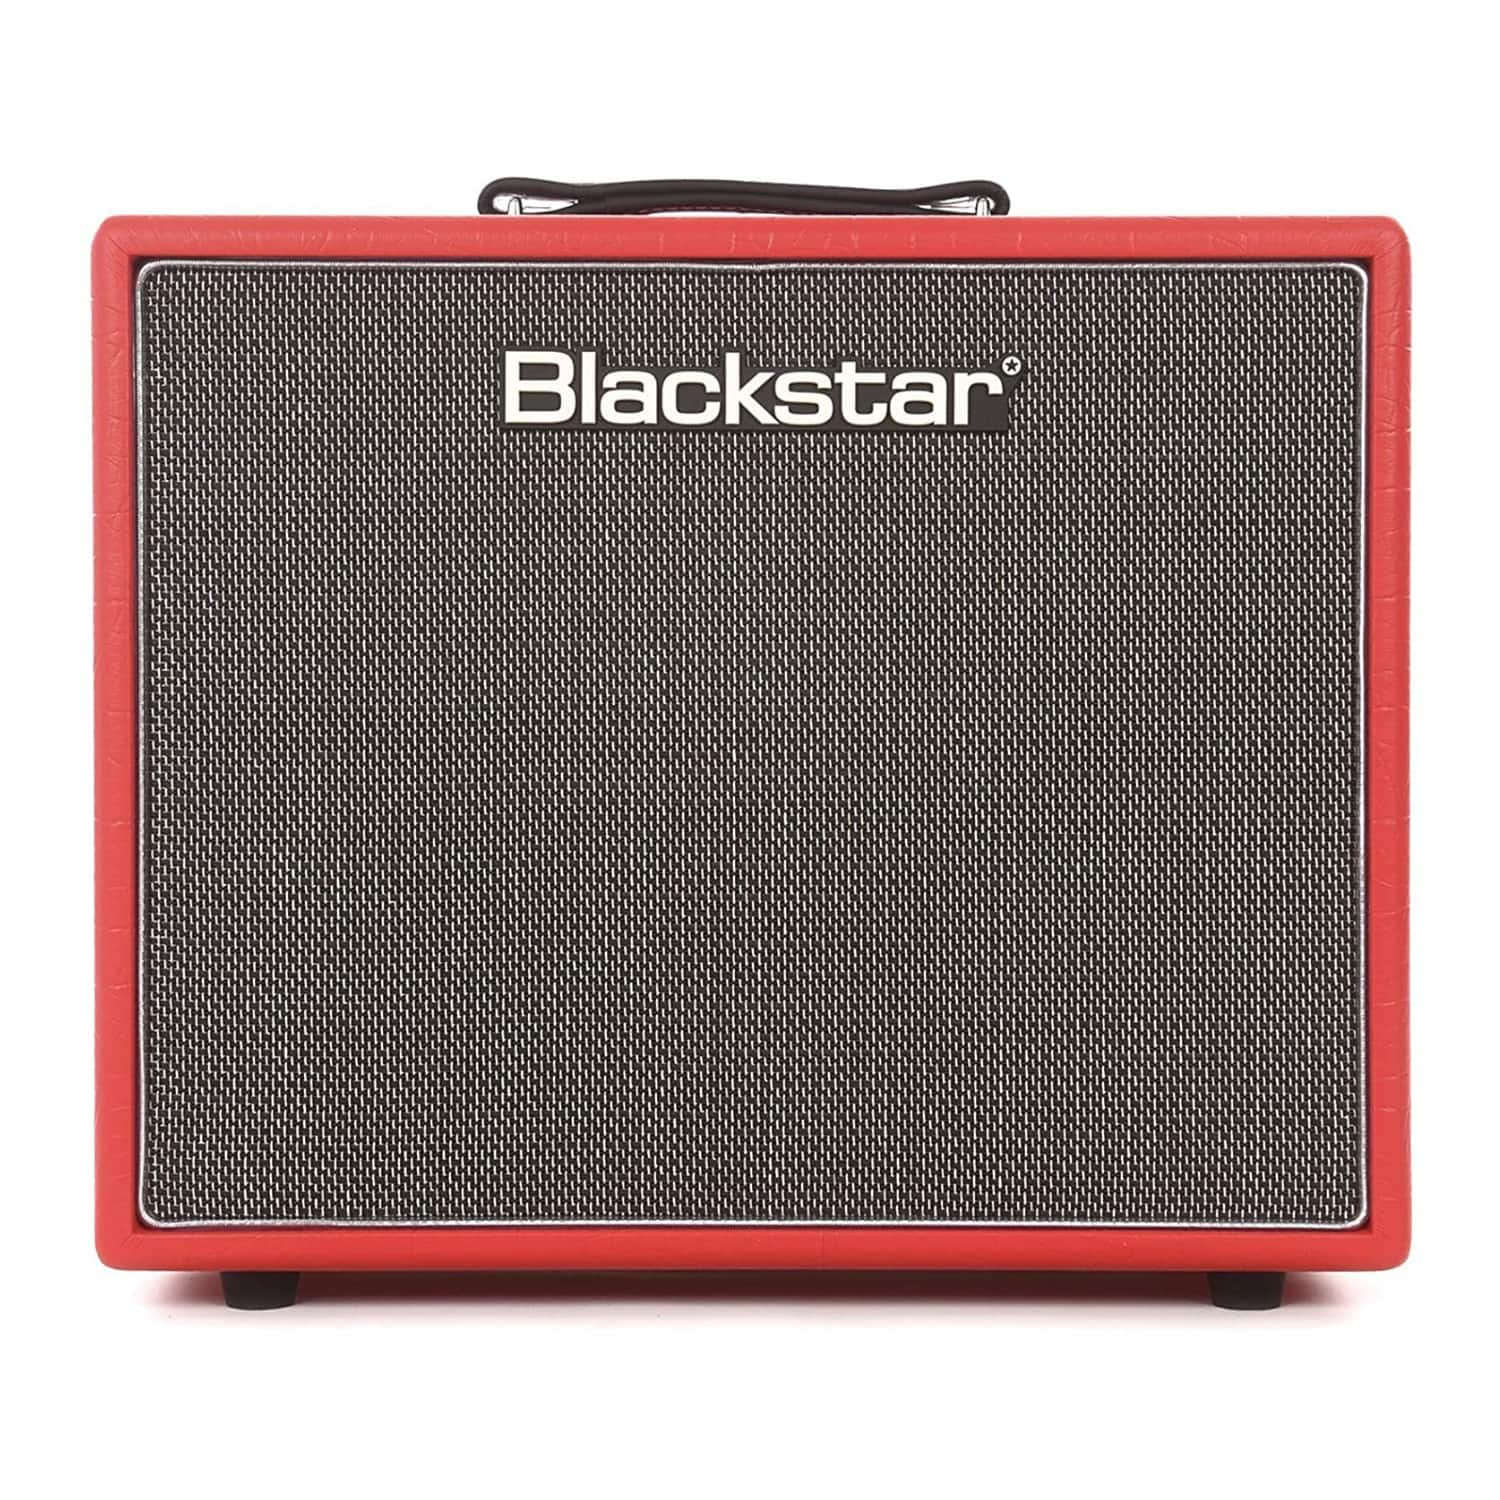 Blackstar HT-20R MkII 20W Tube Combo Guitar Amplifier with Reverb (Candy Apple Red) - $450